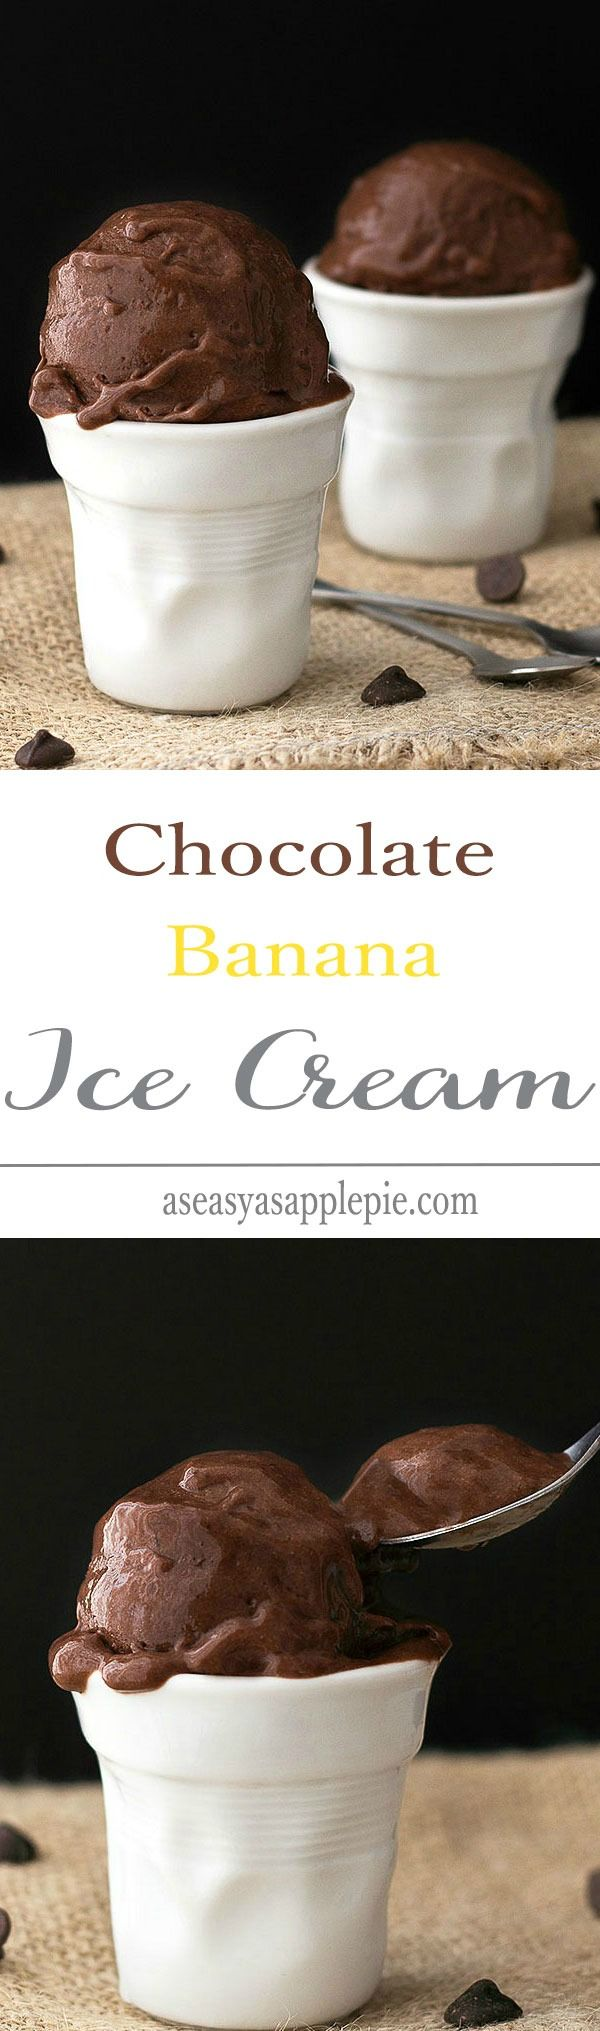 Paleo Chocolate Banana Ice Cream - just two ingredients and a blender needed to make this healthy, creamy treat. No cream, no milk, no refined sugar! A vegan, vegetarian and paleo soft serve dessert!